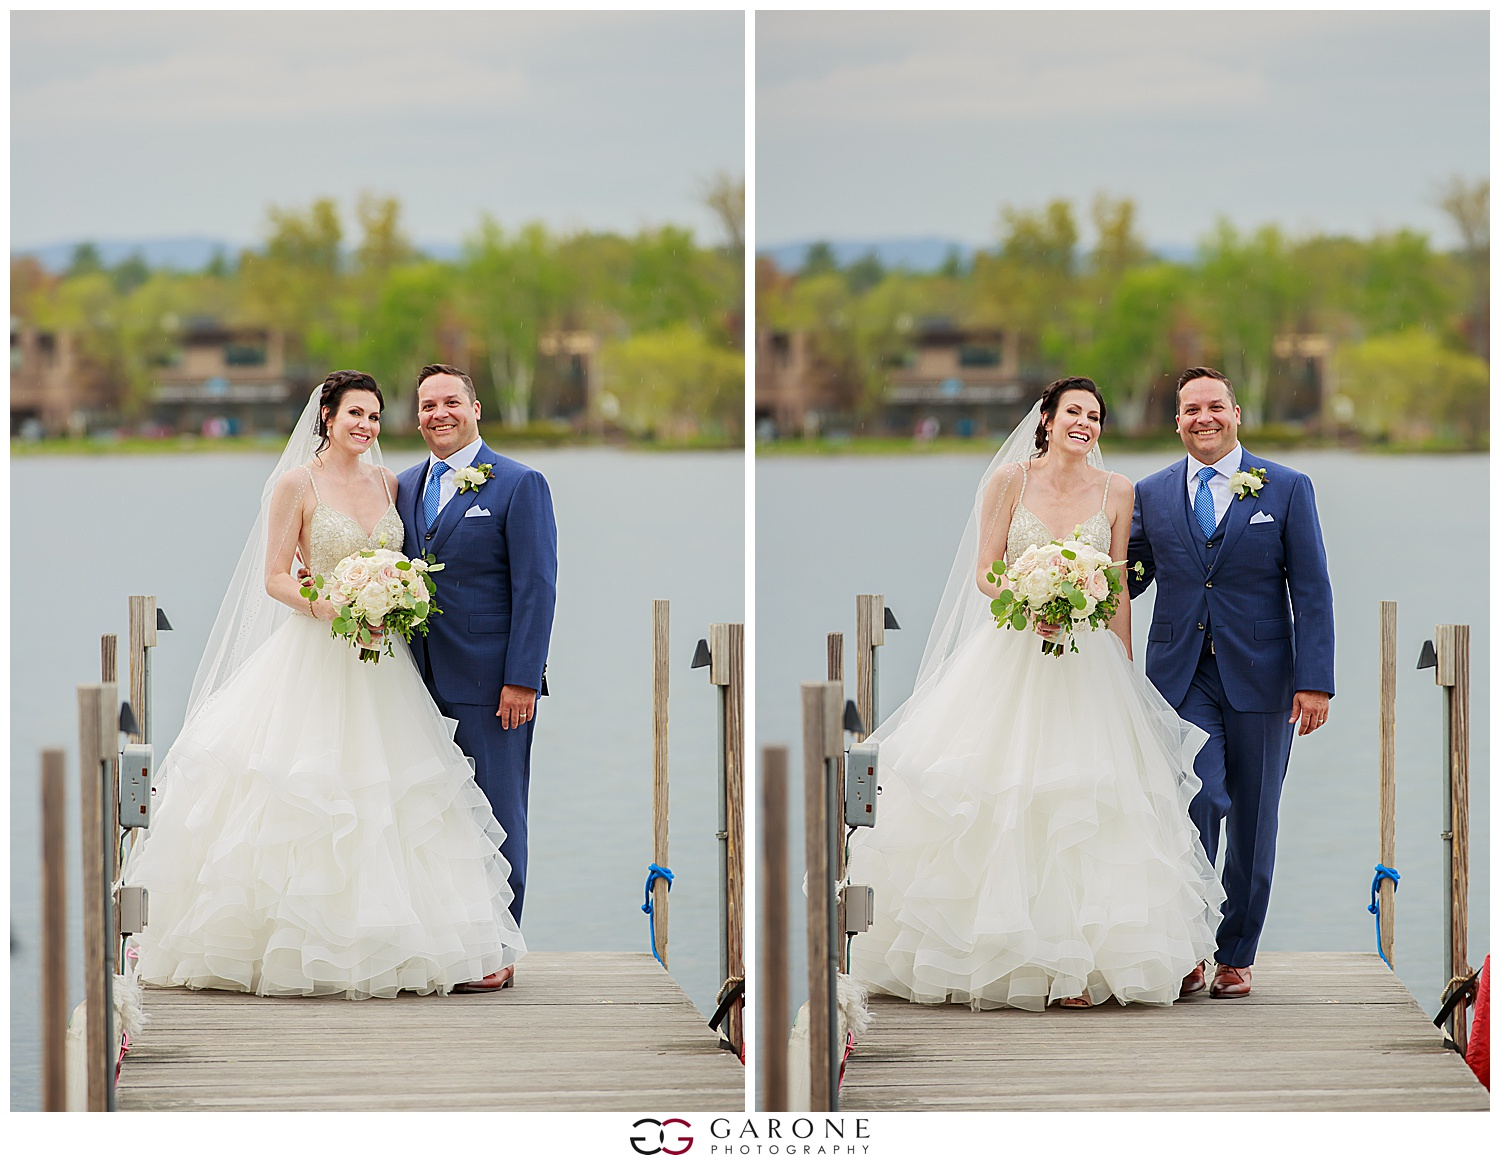 Shauna_Nathan_Carriage_House_Chuch_Landing_Lake_Winnapausakee_Wedding_0027.jpg